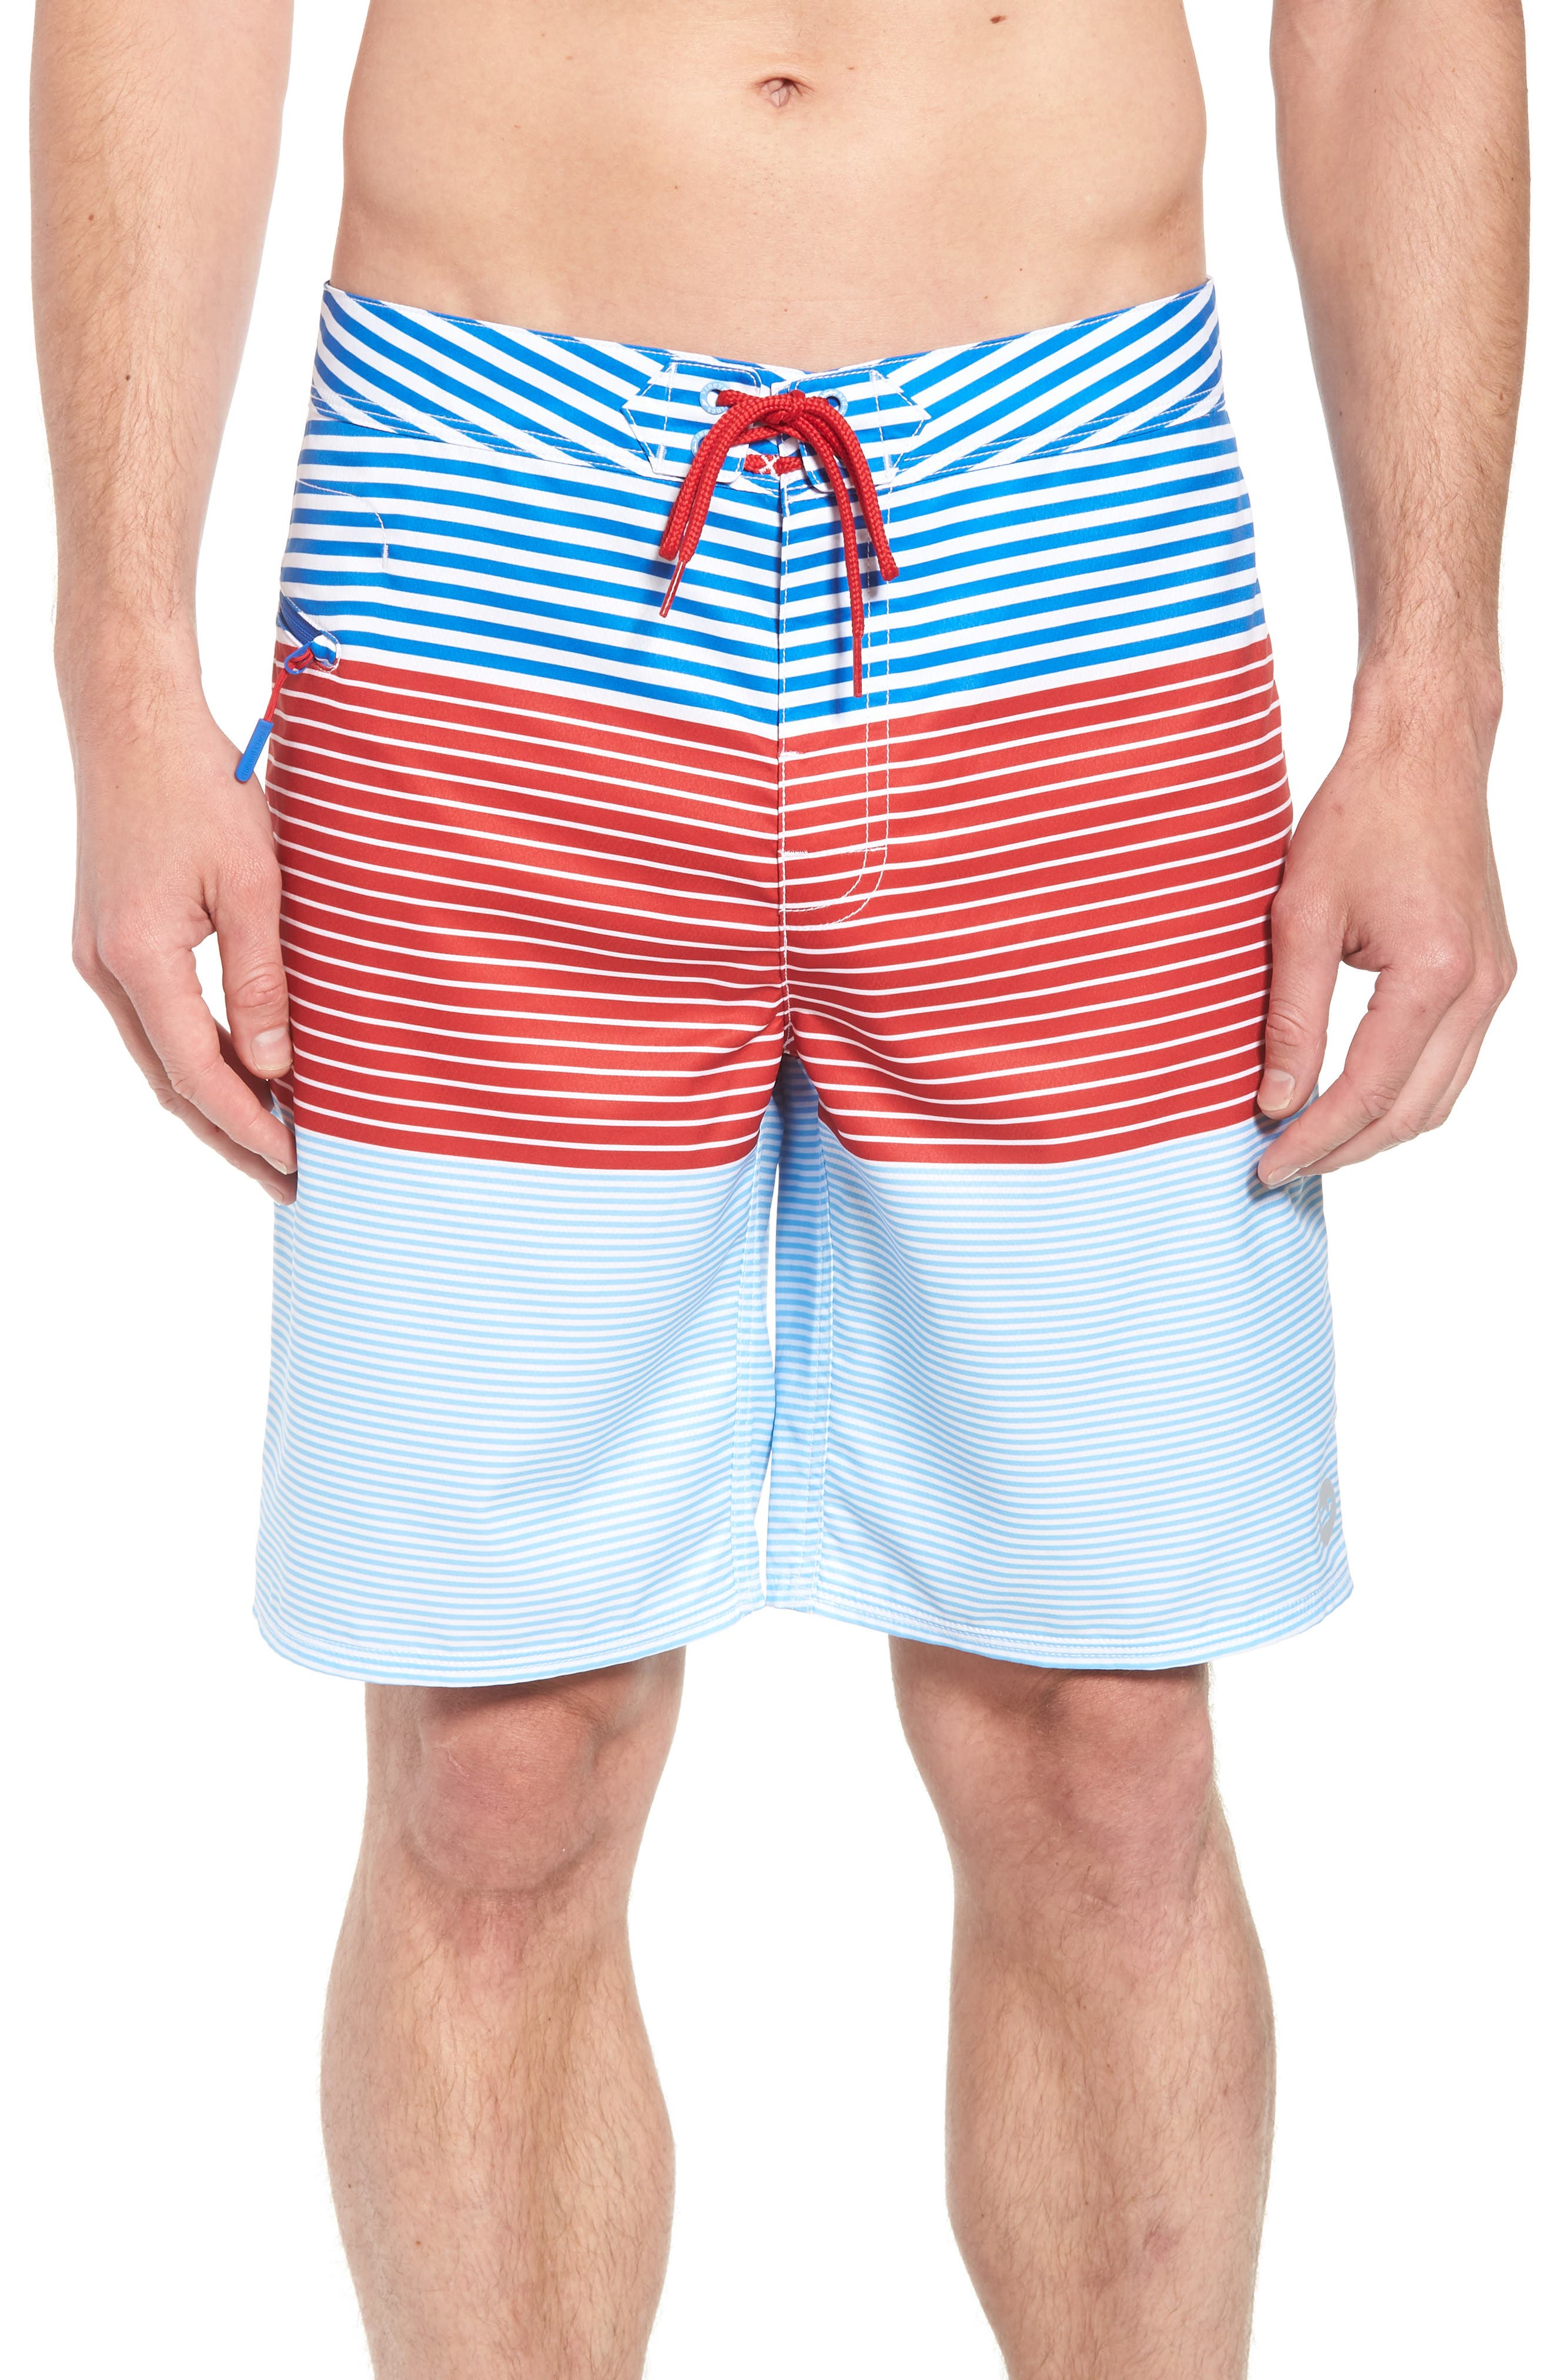 Whale Harbor Stripe Board Shorts,                             Main thumbnail 1, color,                             427